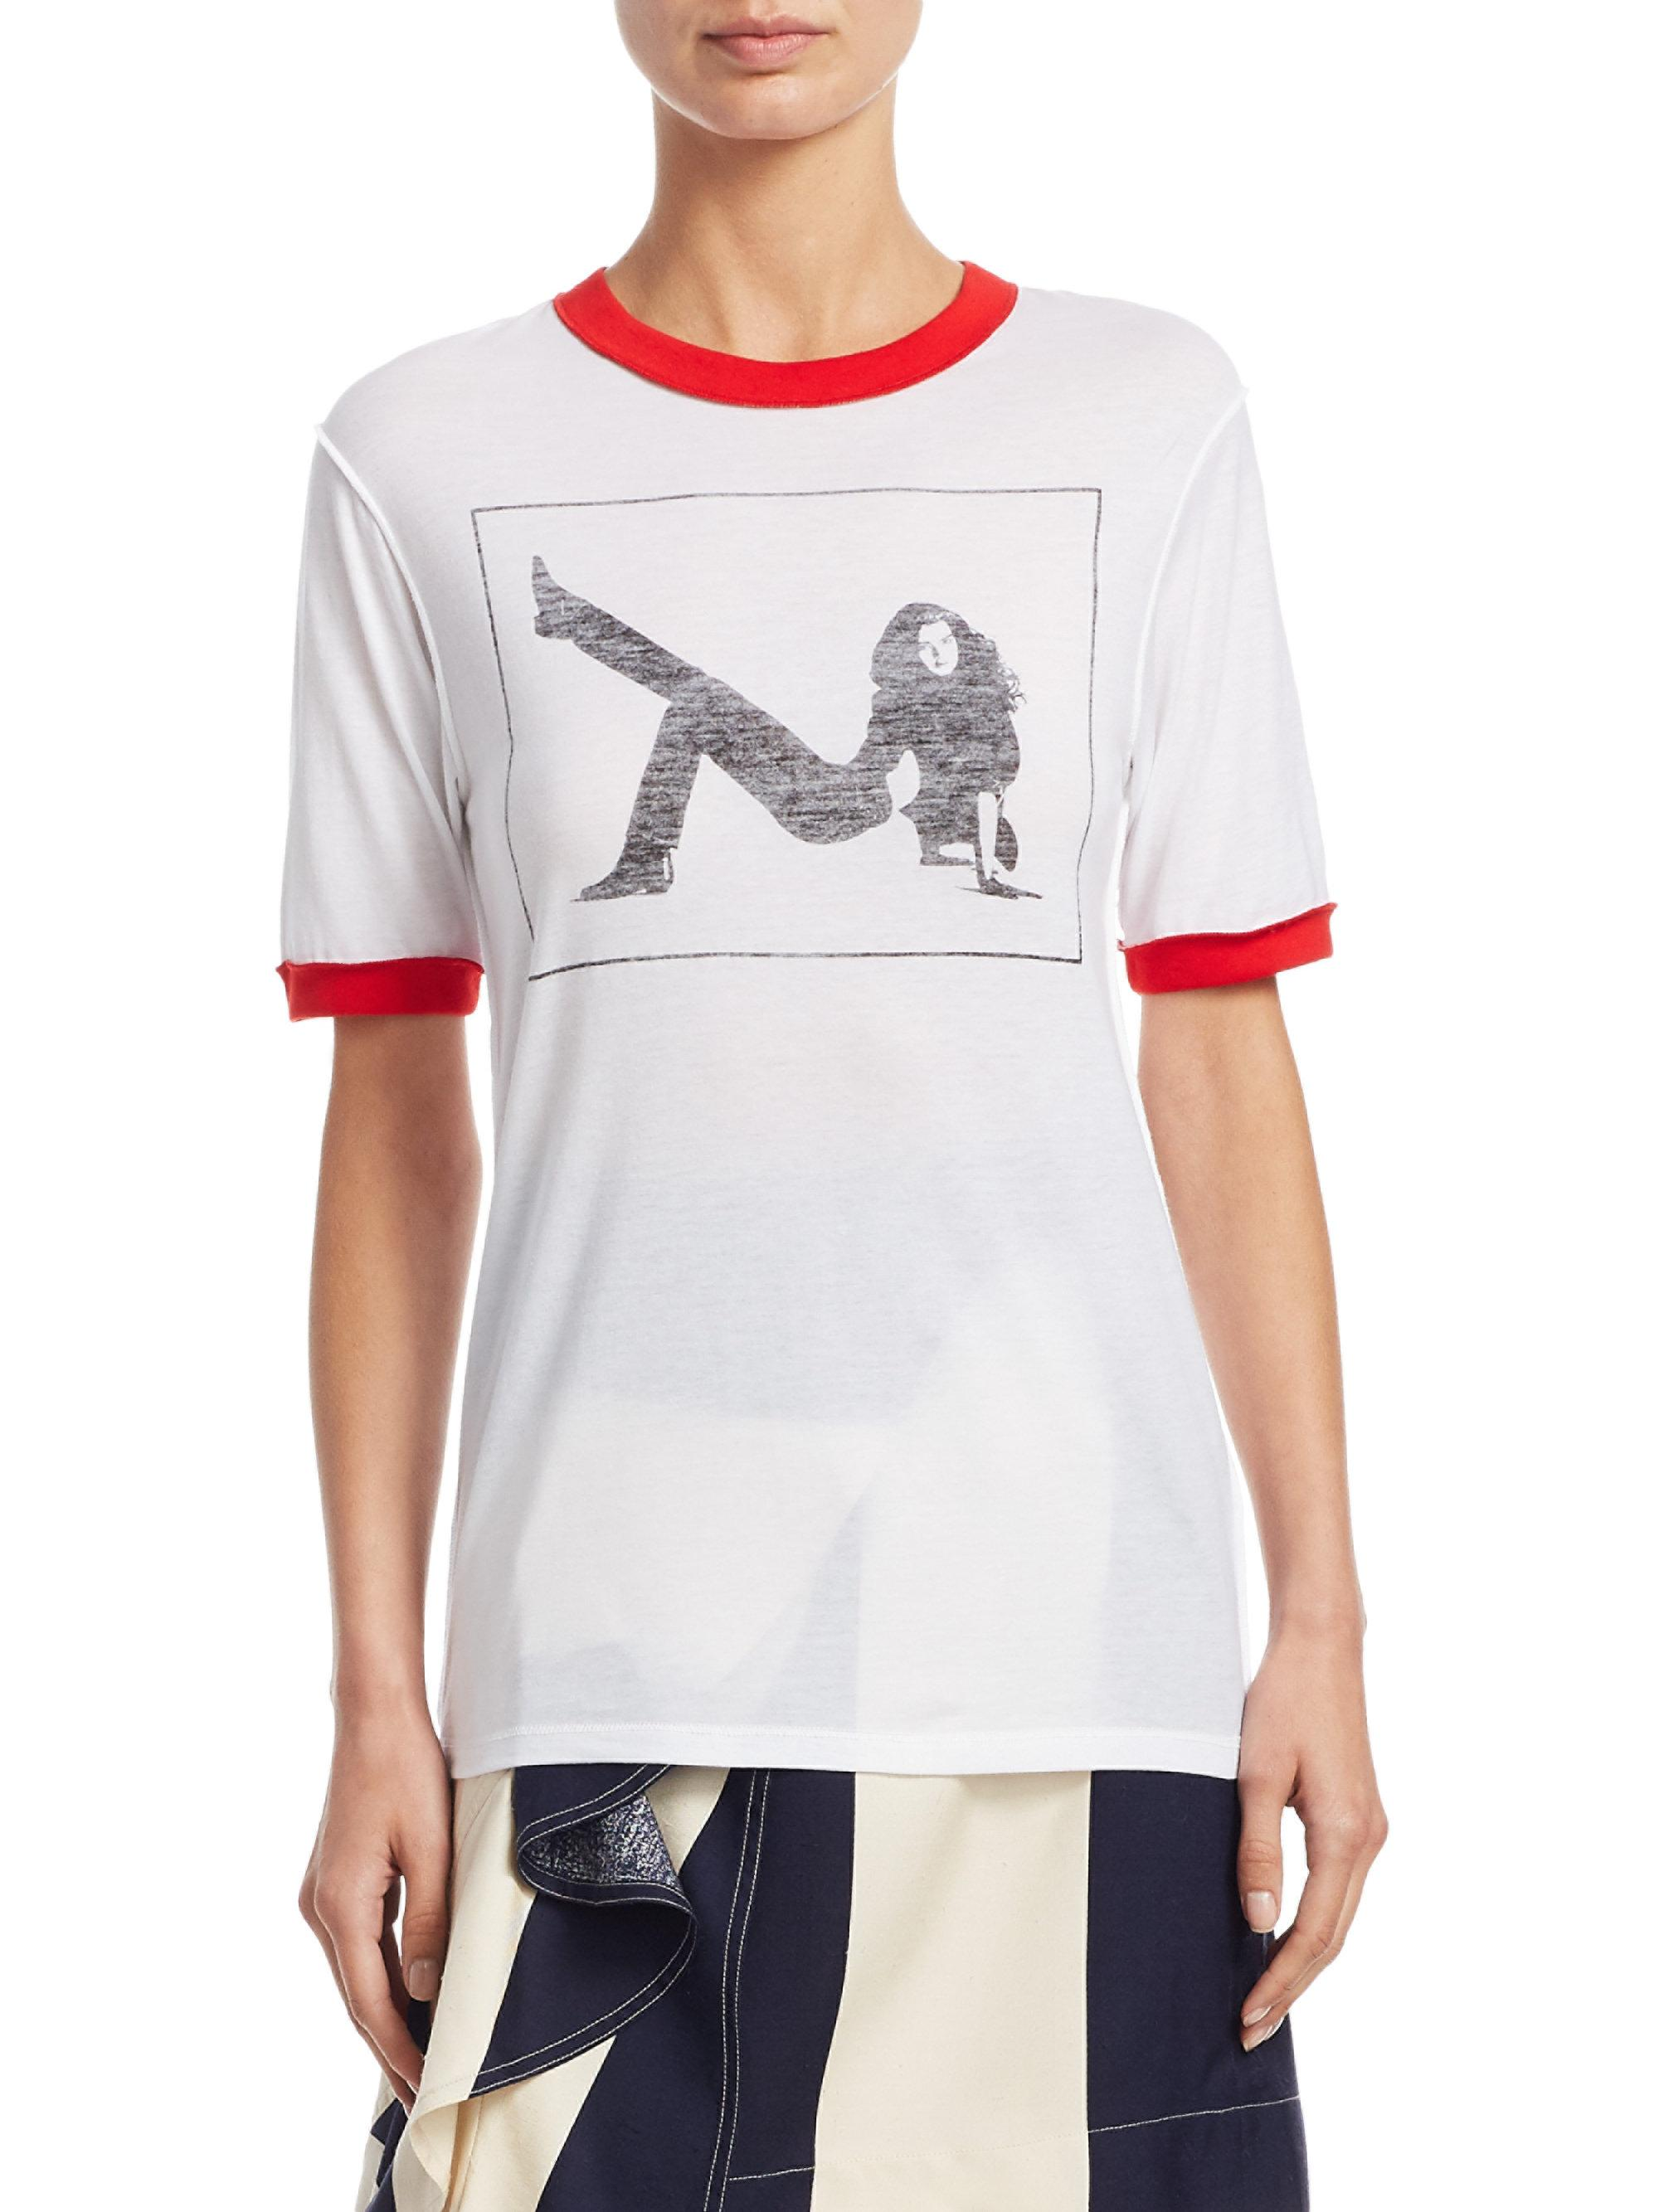 Calvin Klein 205W39nyc Brooke Shields T-shirt Cheap Many Kinds Of RhjUV